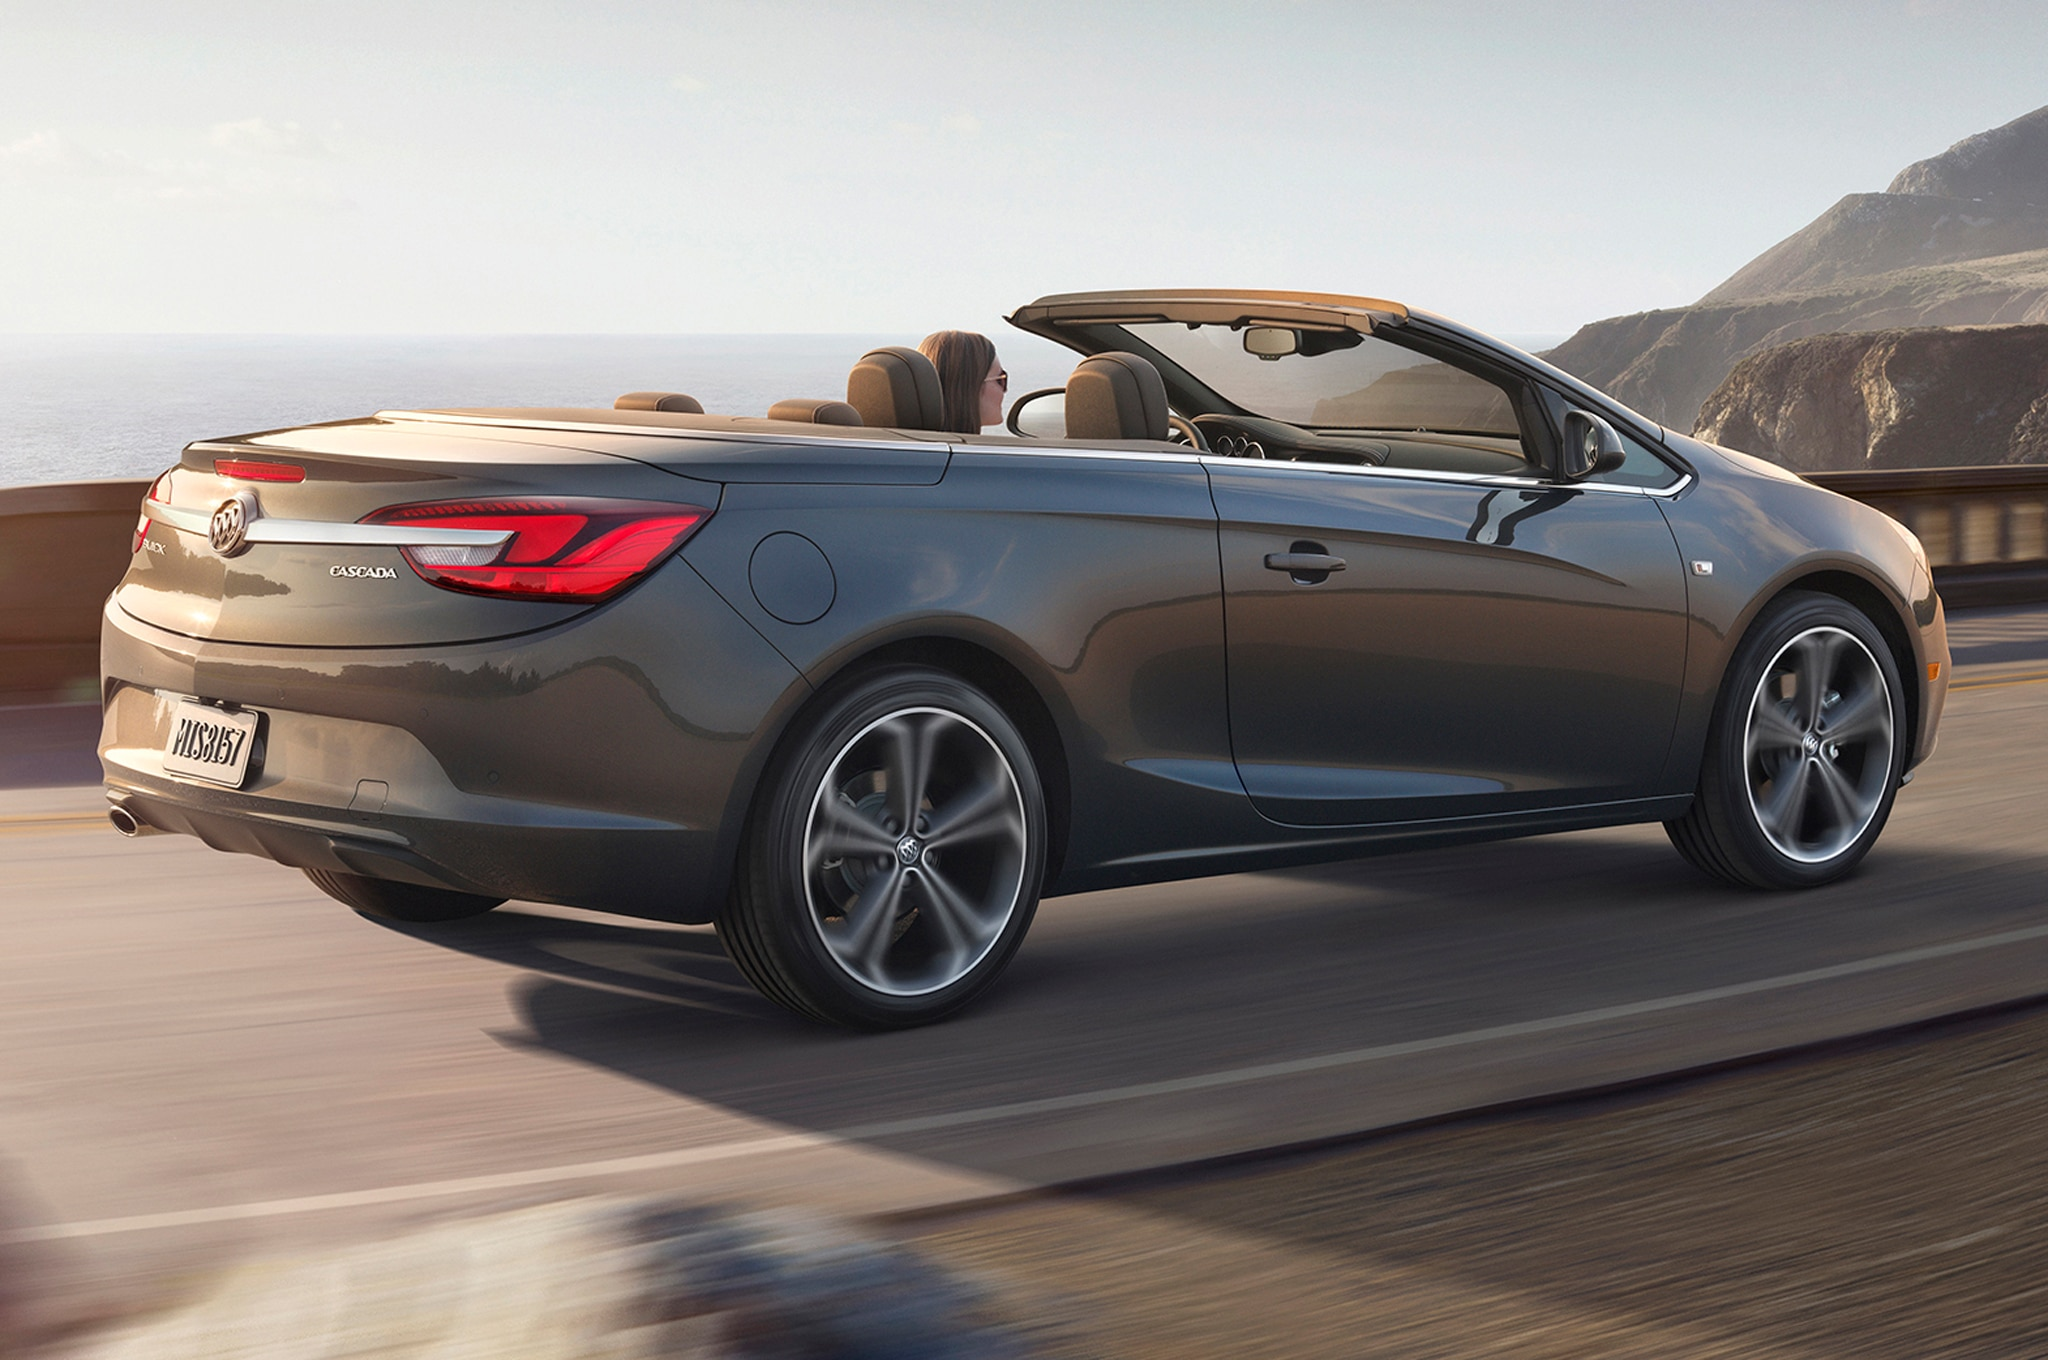 2016 buick cascada convertible revealed at detroit auto show. Black Bedroom Furniture Sets. Home Design Ideas